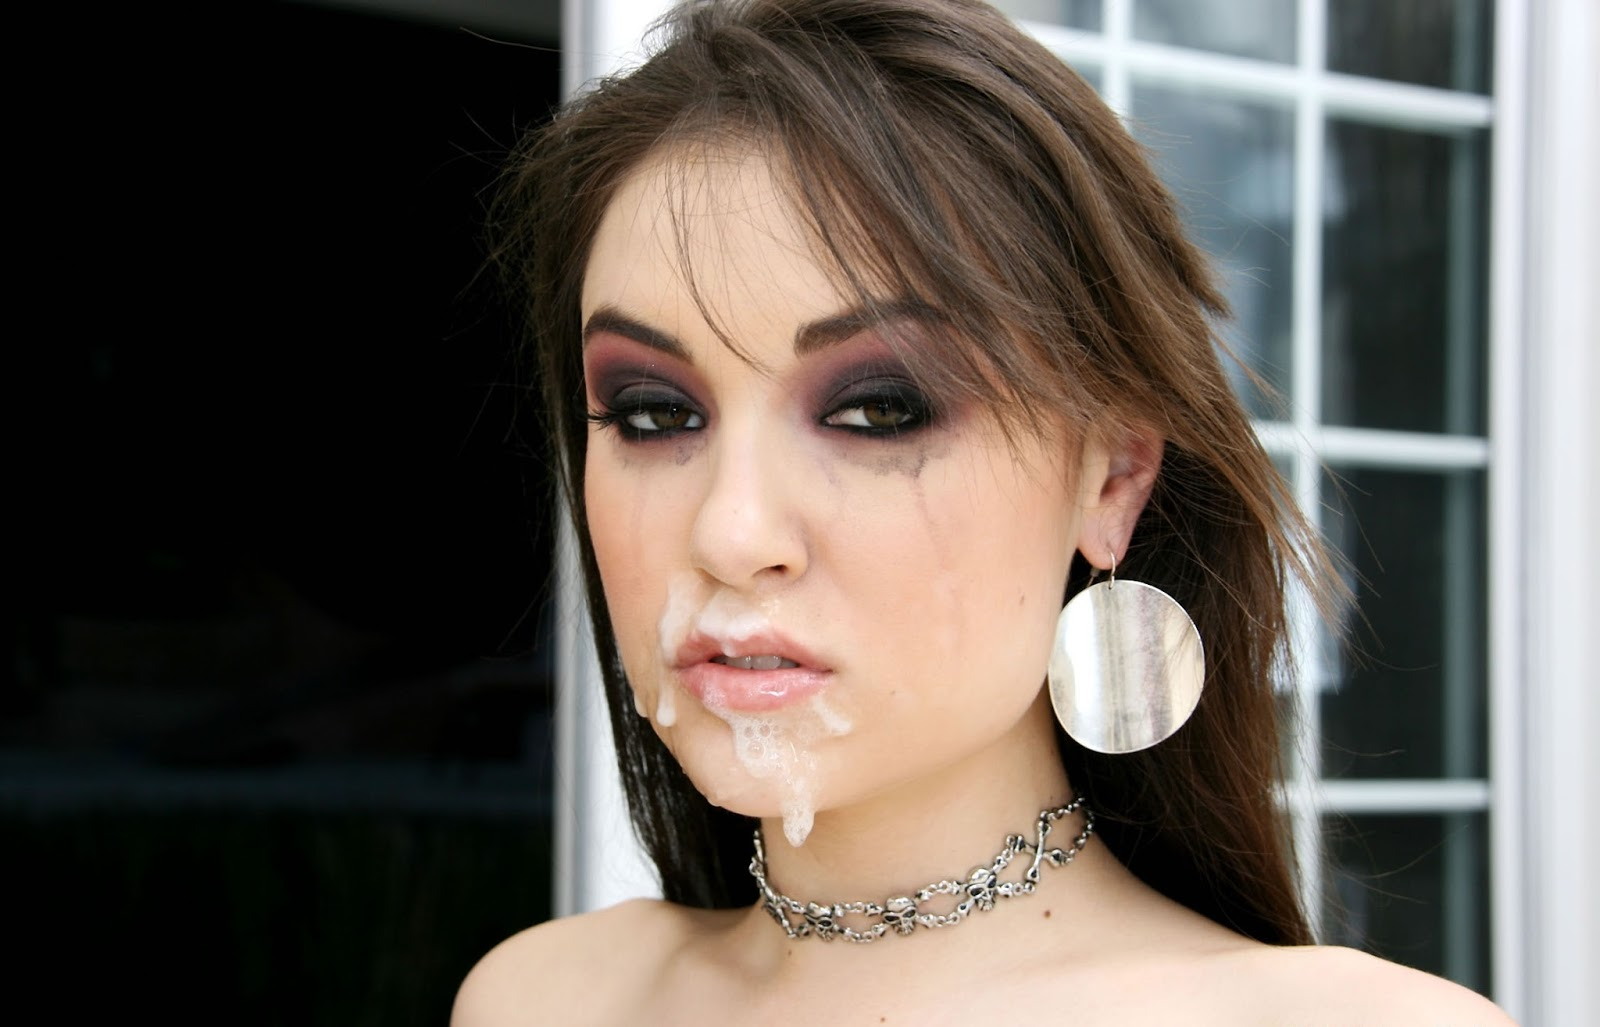 Sasha grey on eating sperm